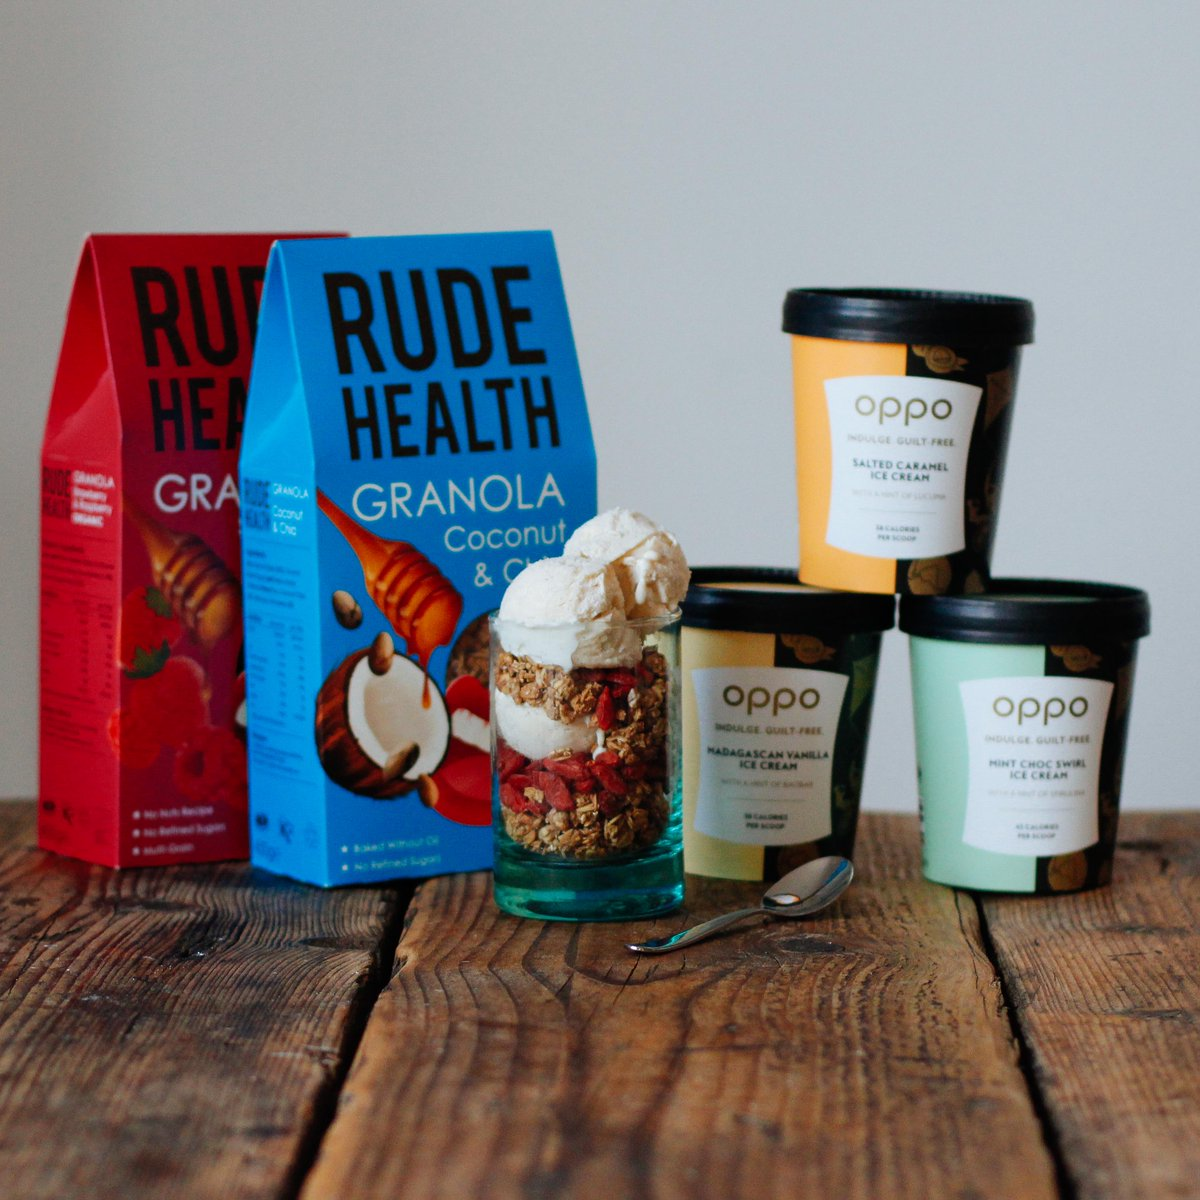 *WIN* Follow & RT both accounts to win this sensationally sexy combination of @OppoIceCream and #RudeHealth granola. https://t.co/SDPwqHmdYV